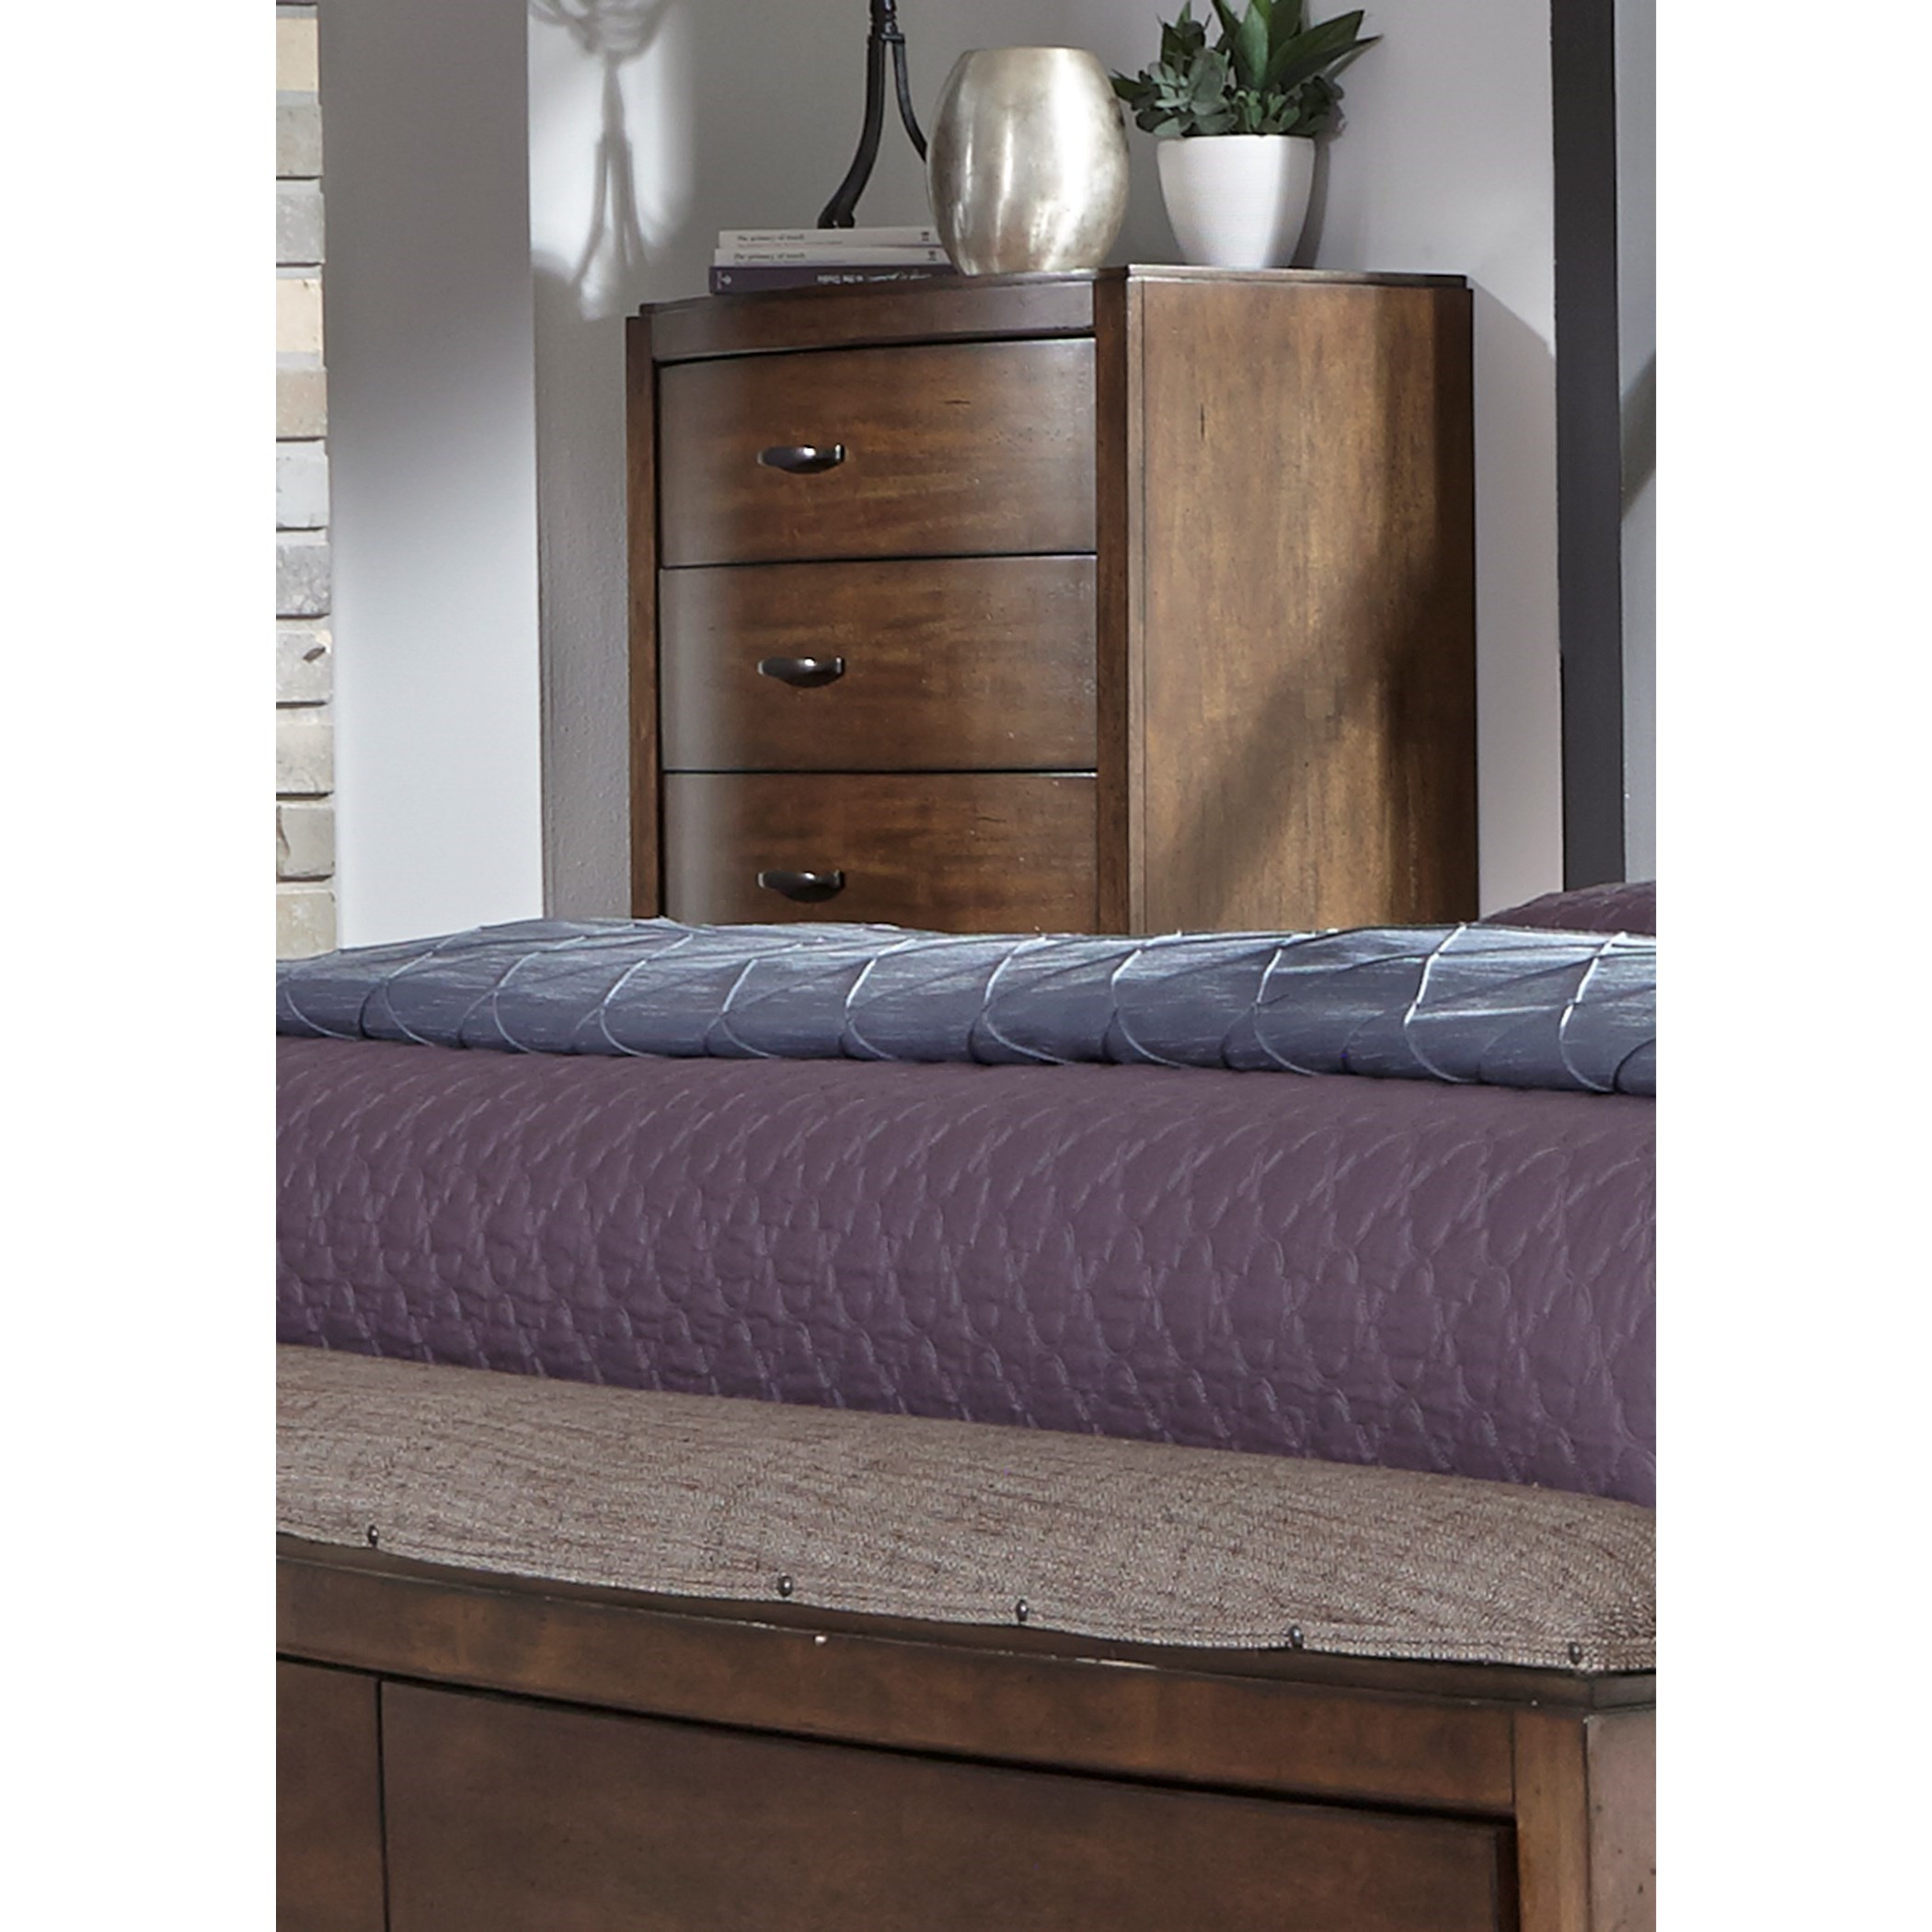 Avalon III 5 Drawer Chest by Liberty Furniture at Standard Furniture